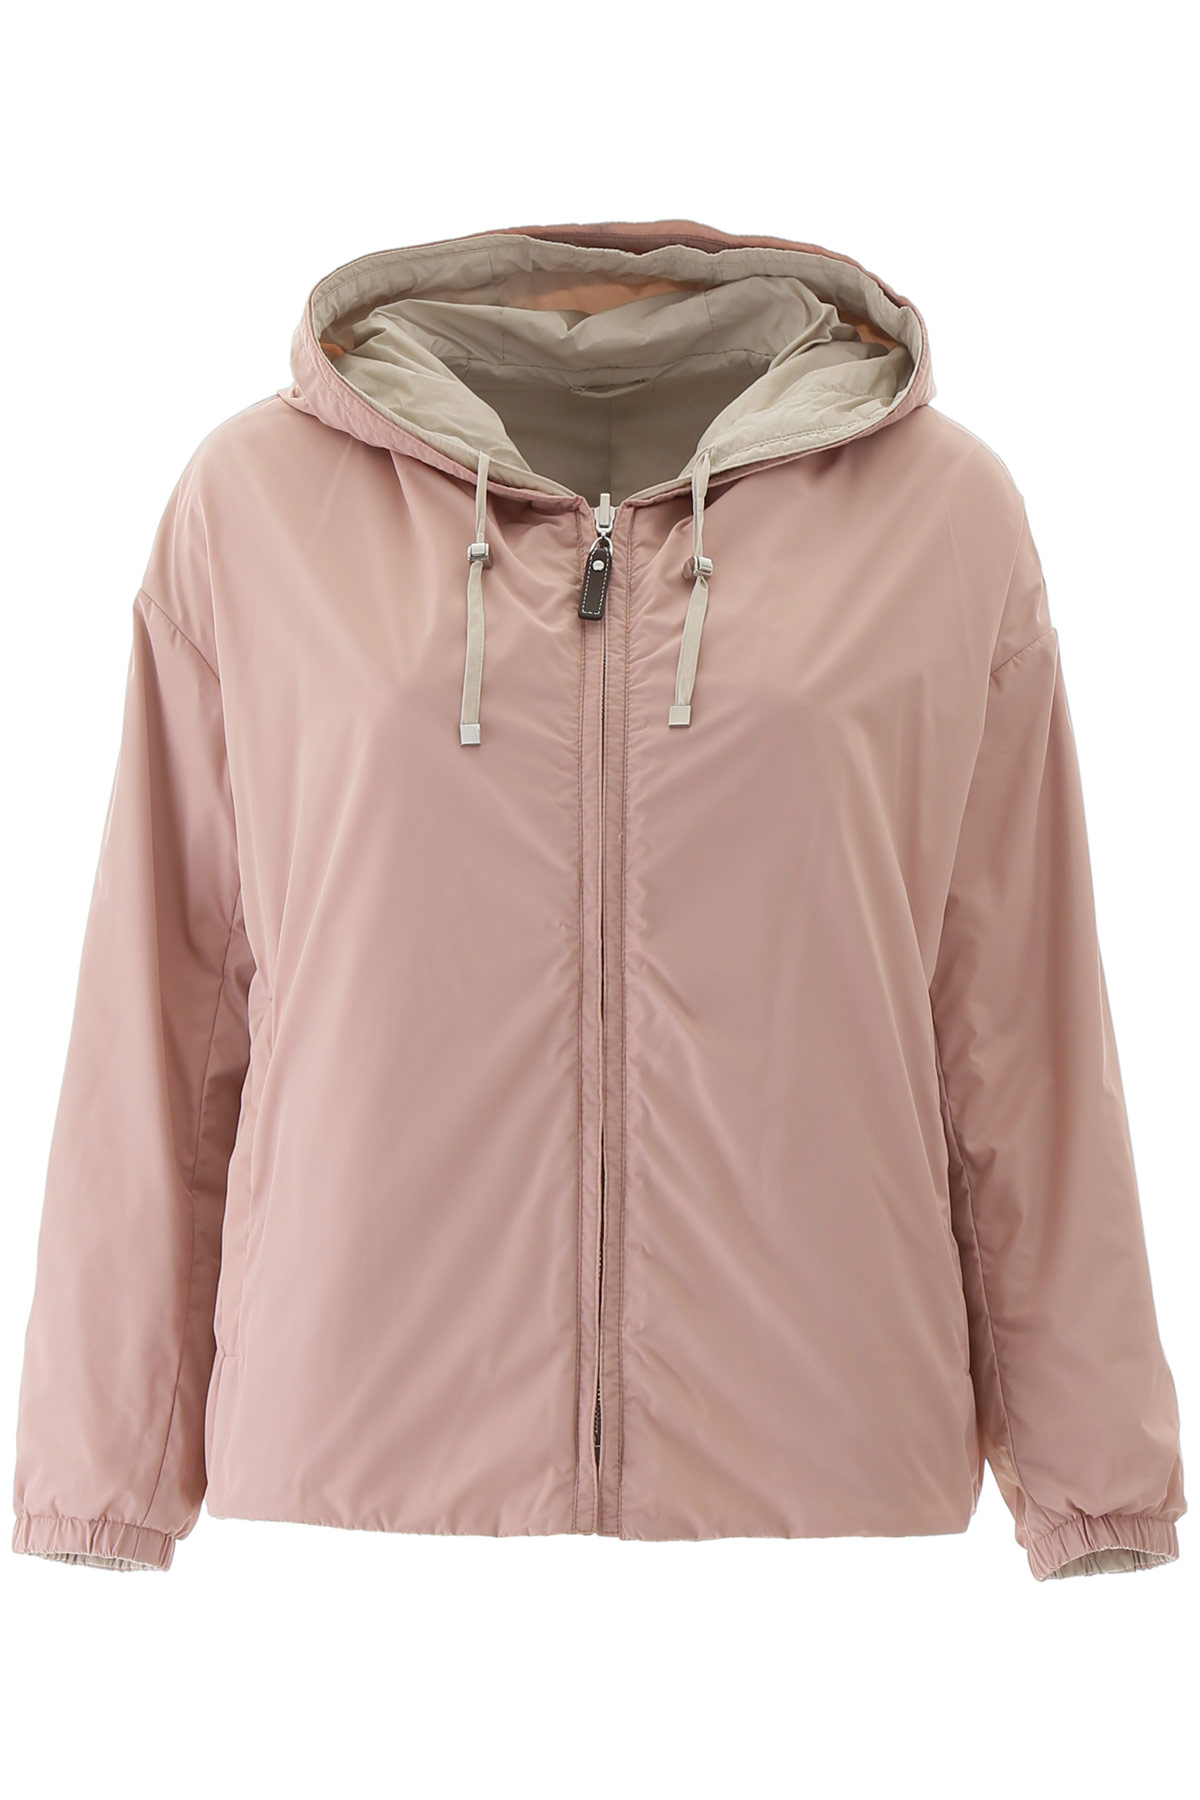 MAX MARA THE CUBE REVERSIBLE ESPORTY JACKET 40 Pink, Beige Technical